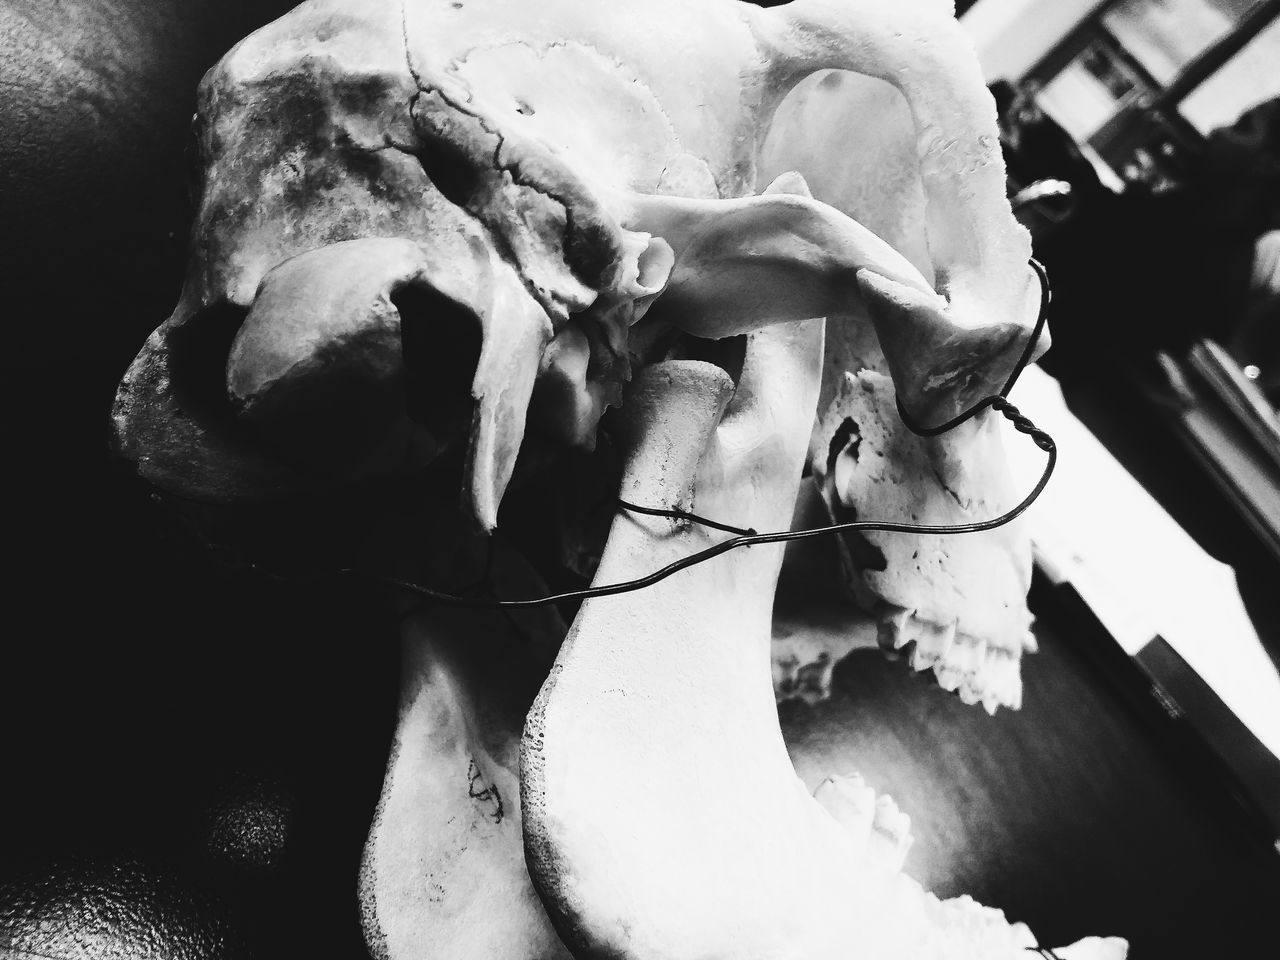 Q is for Queer Jaw Showcase March Science Lab Black And White Forensic Anthropology Forensic Science Lab Cow Skull Skull Bones The Lovely Bones VSCO Simple Photography Mystery Eerie Beautiful Looking Behind Telling Stories Differently Nature's Diversities Fine Art Photography